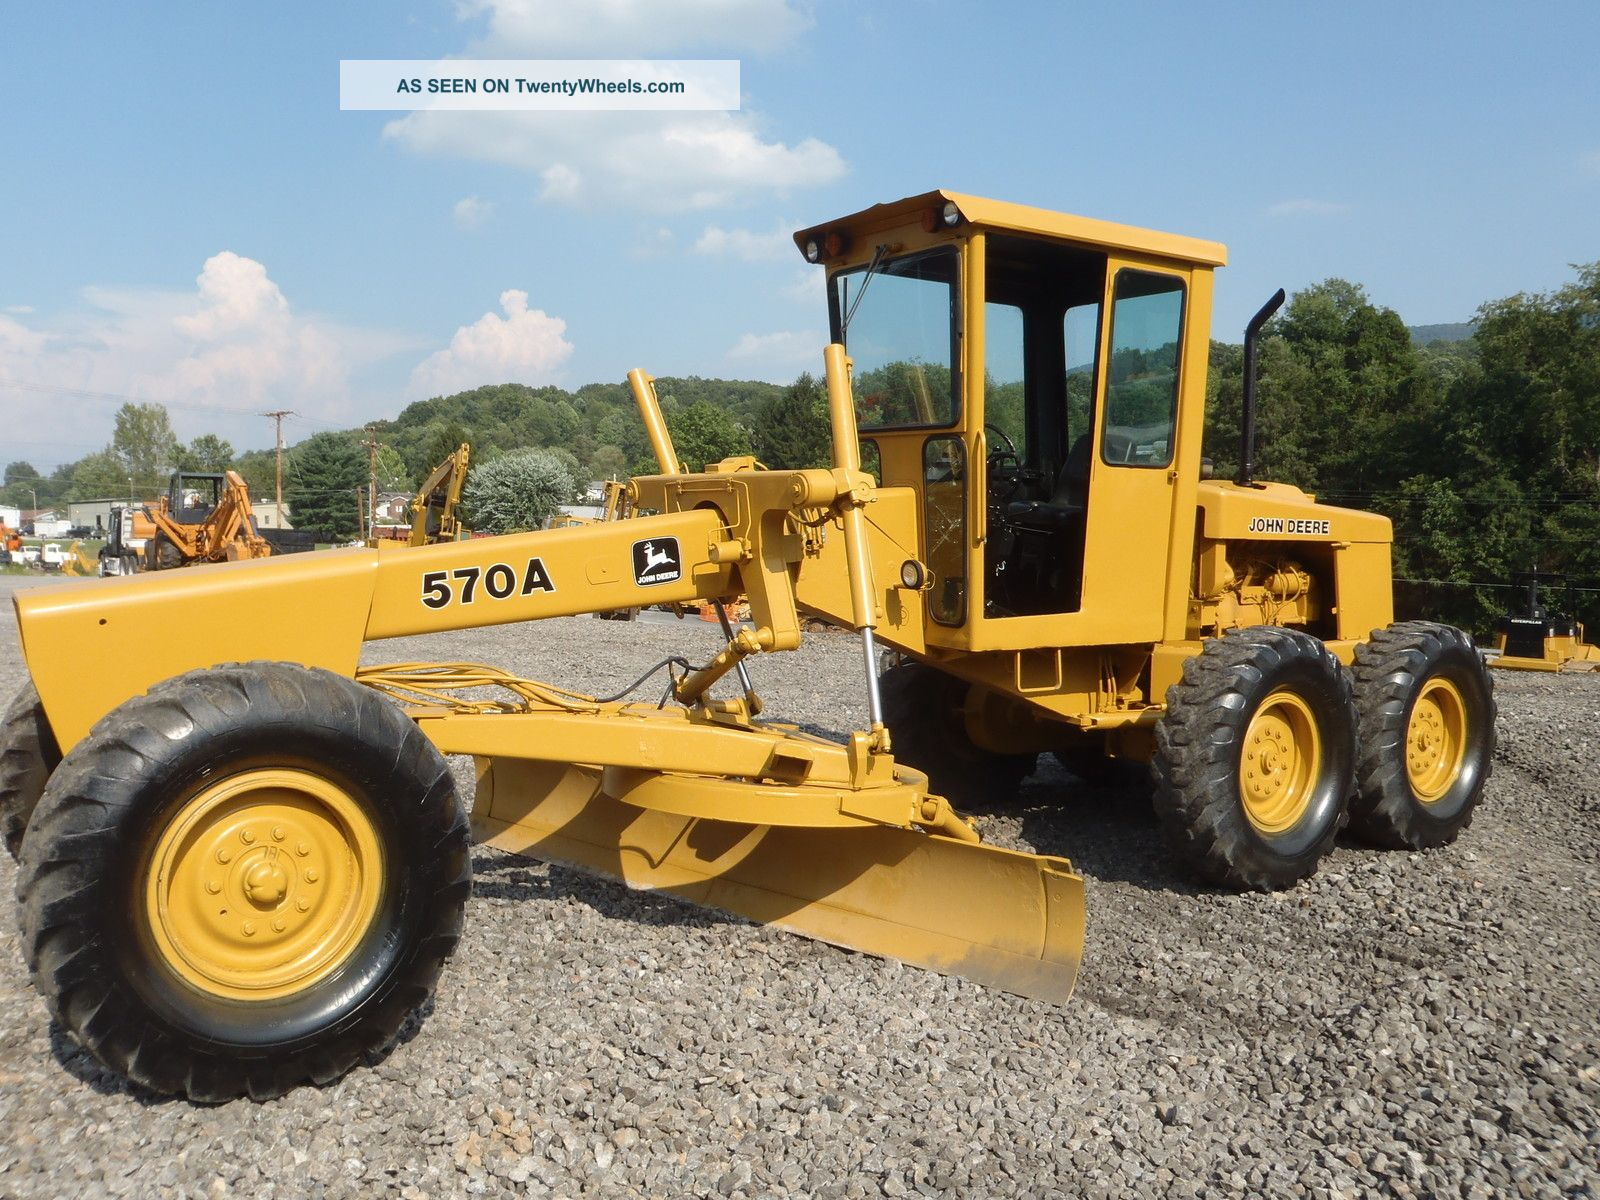 John Deere 570a Motor Grader Articulating,  Sliding Mold Board Runs Great Look Graders photo